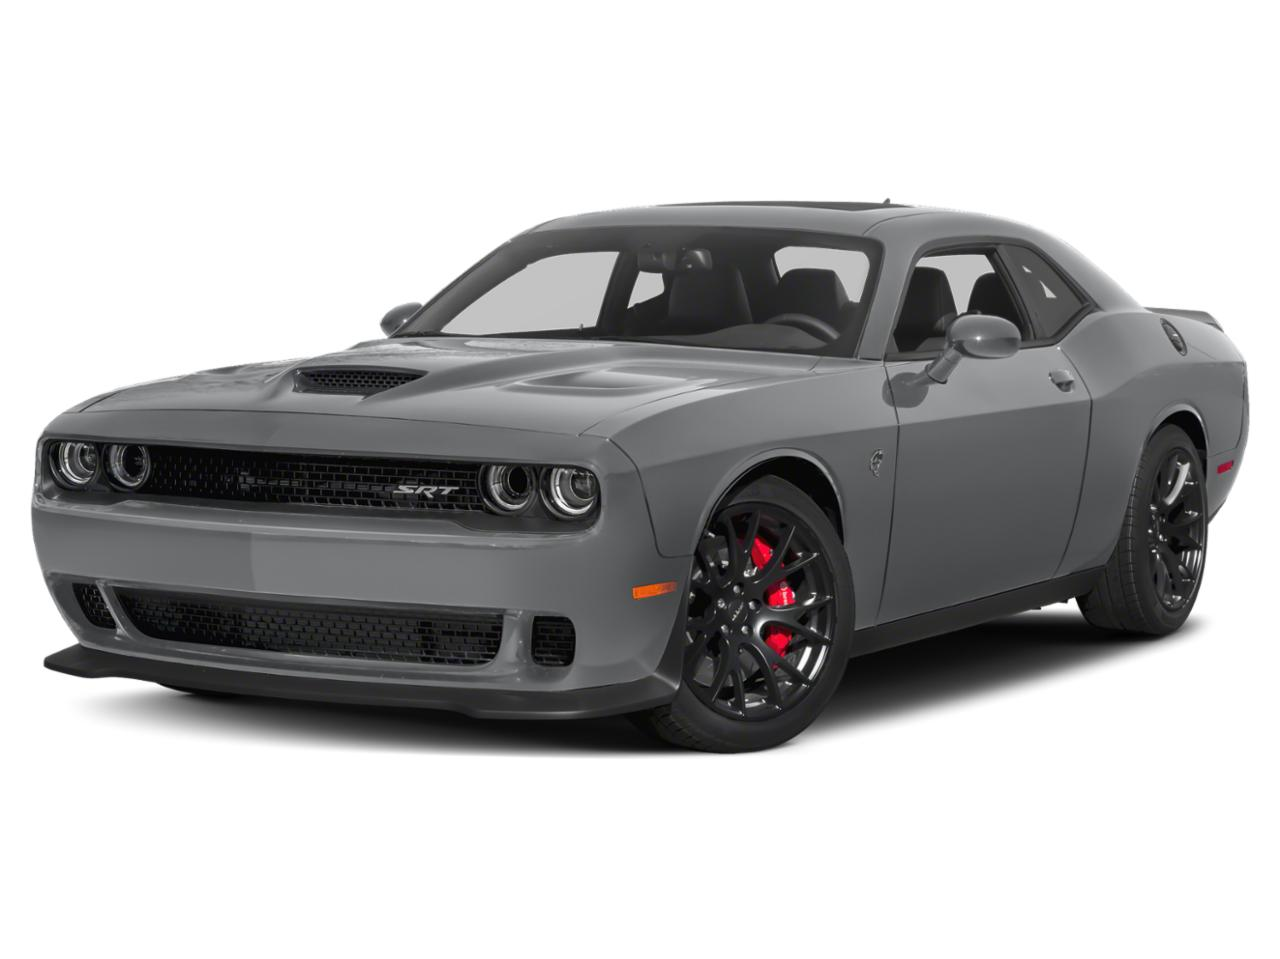 2018 Dodge Challenger Vehicle Photo in Albuquerque, NM 87114